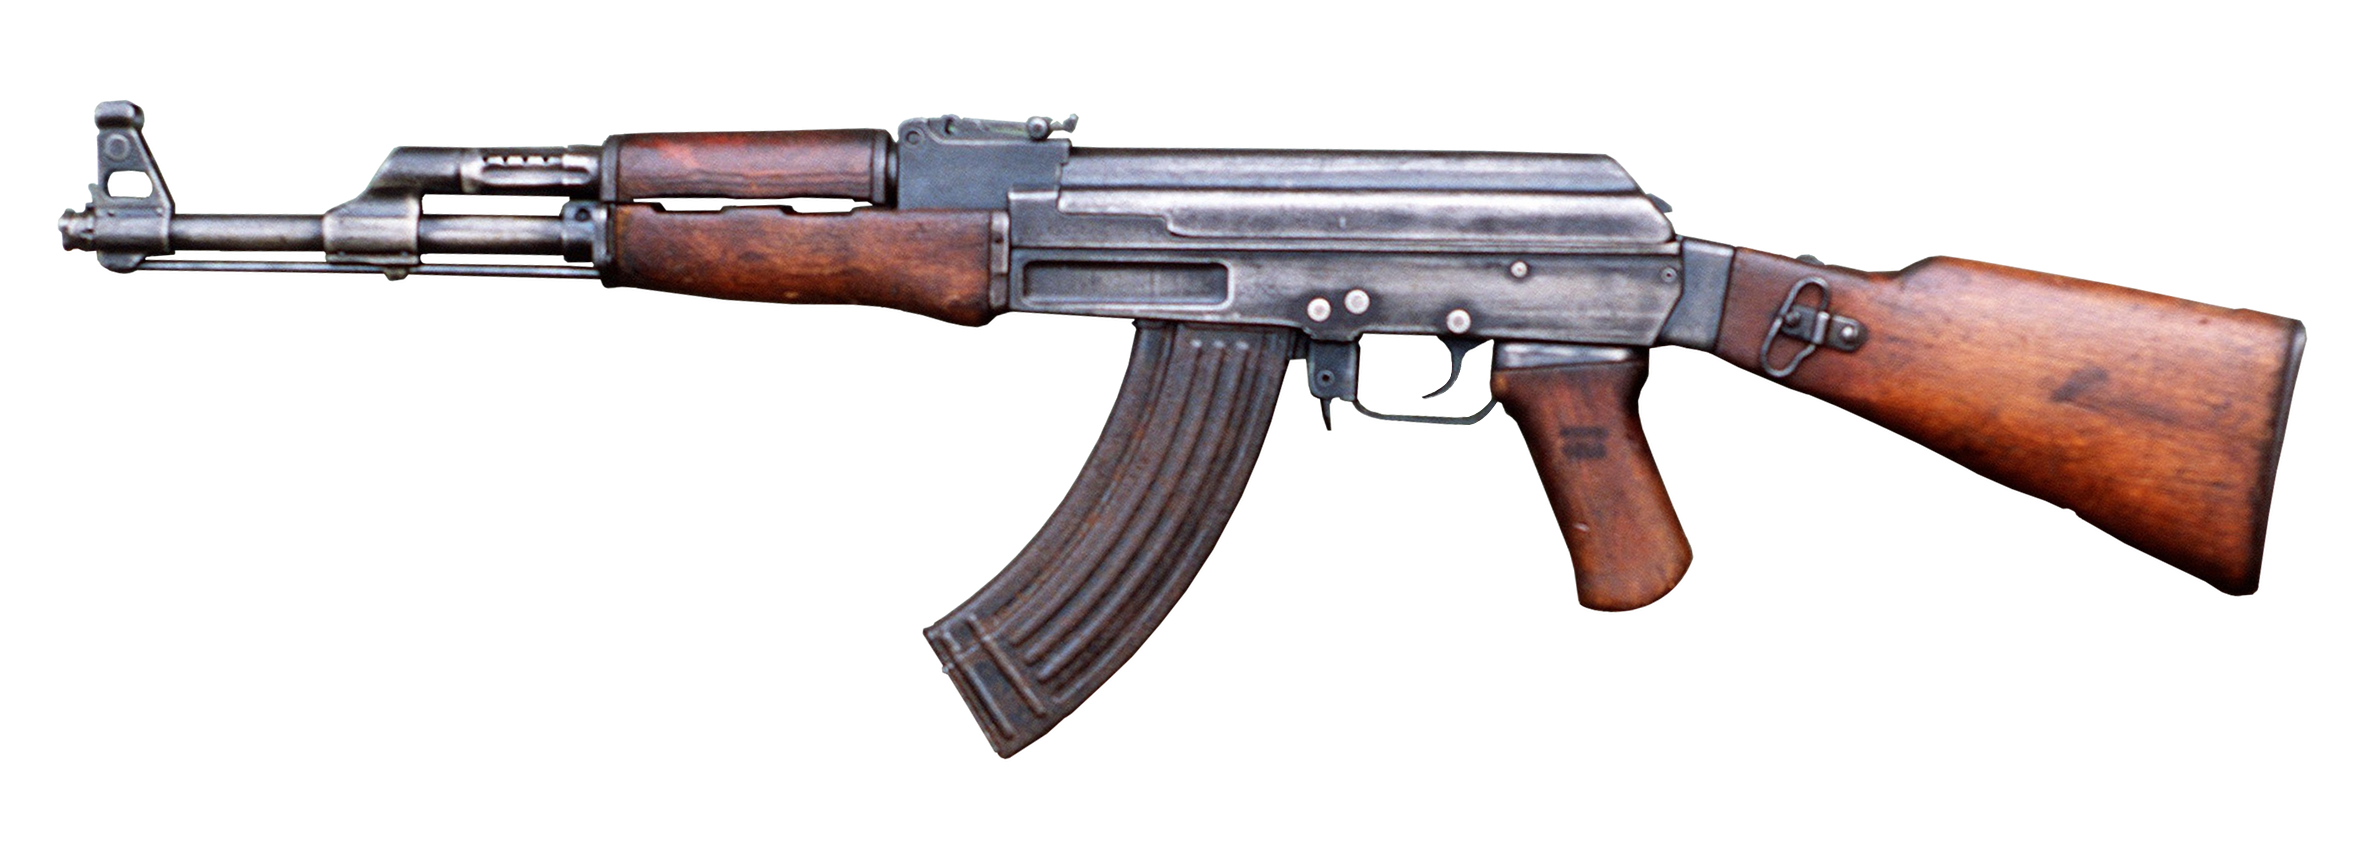 Why Is It Always The AK Guys?